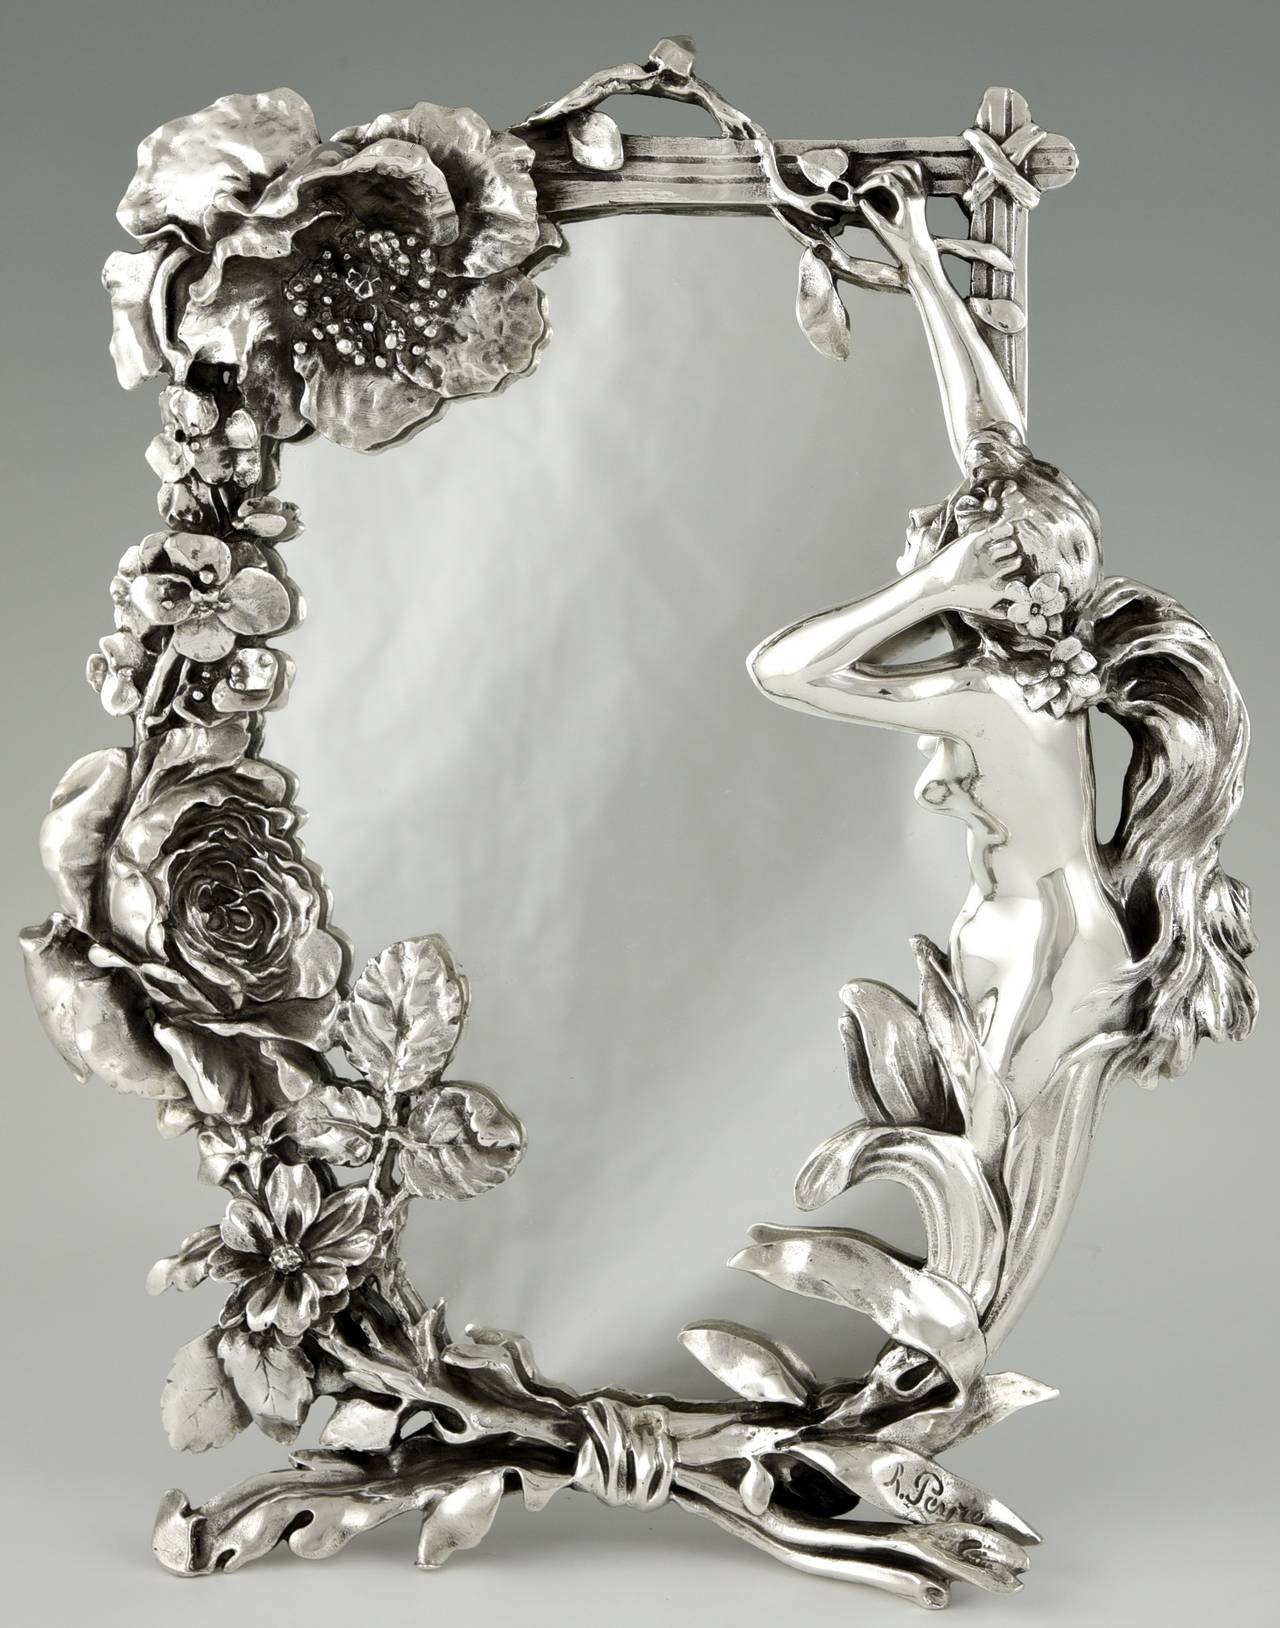 French Art Nouveau Silvered Table Mirror With Nude Peyre 1900 Pertaining To Mirror Art Nouveau (Image 12 of 15)